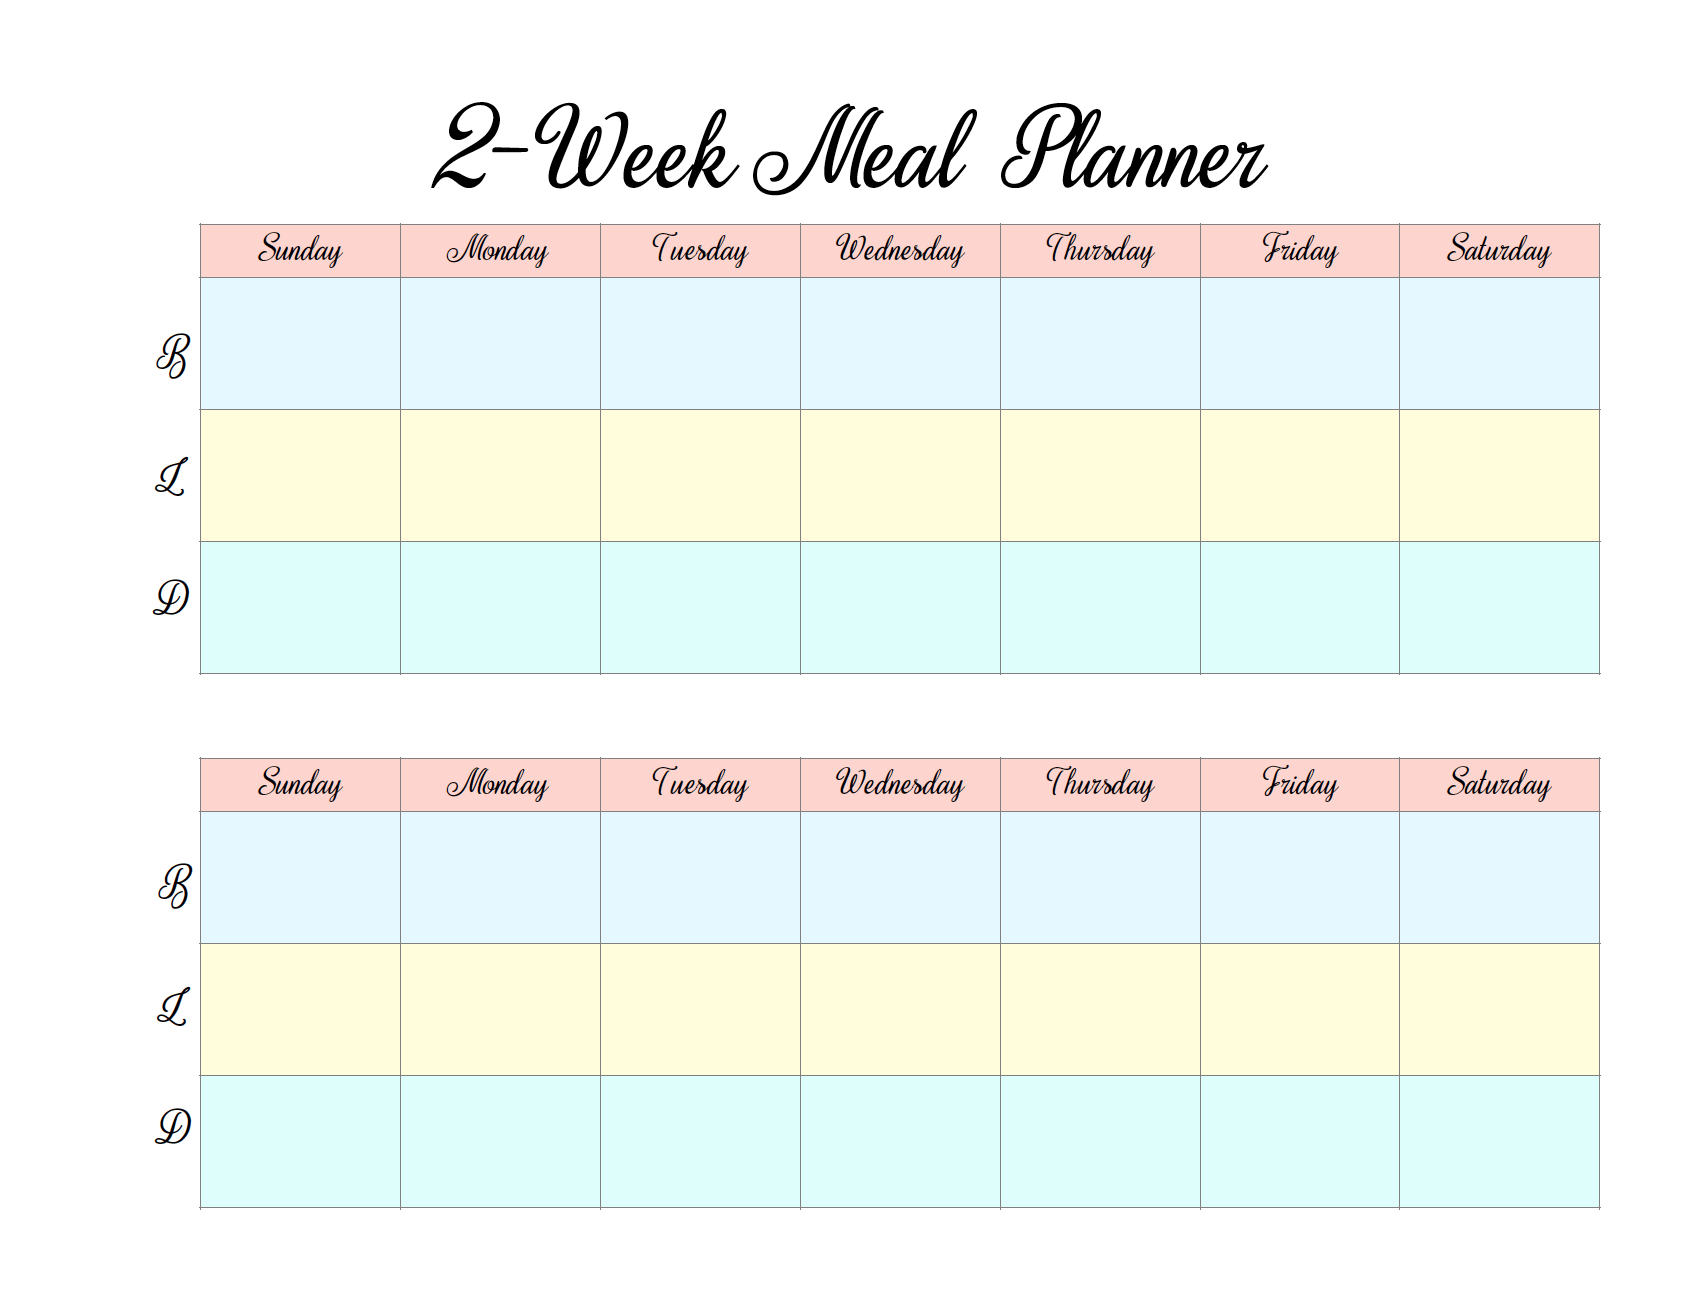 Free Printable 2-week Meal Planners: 4 different designs. Save time and money by meal planning! #free #freeprintable #meal #mealplanner